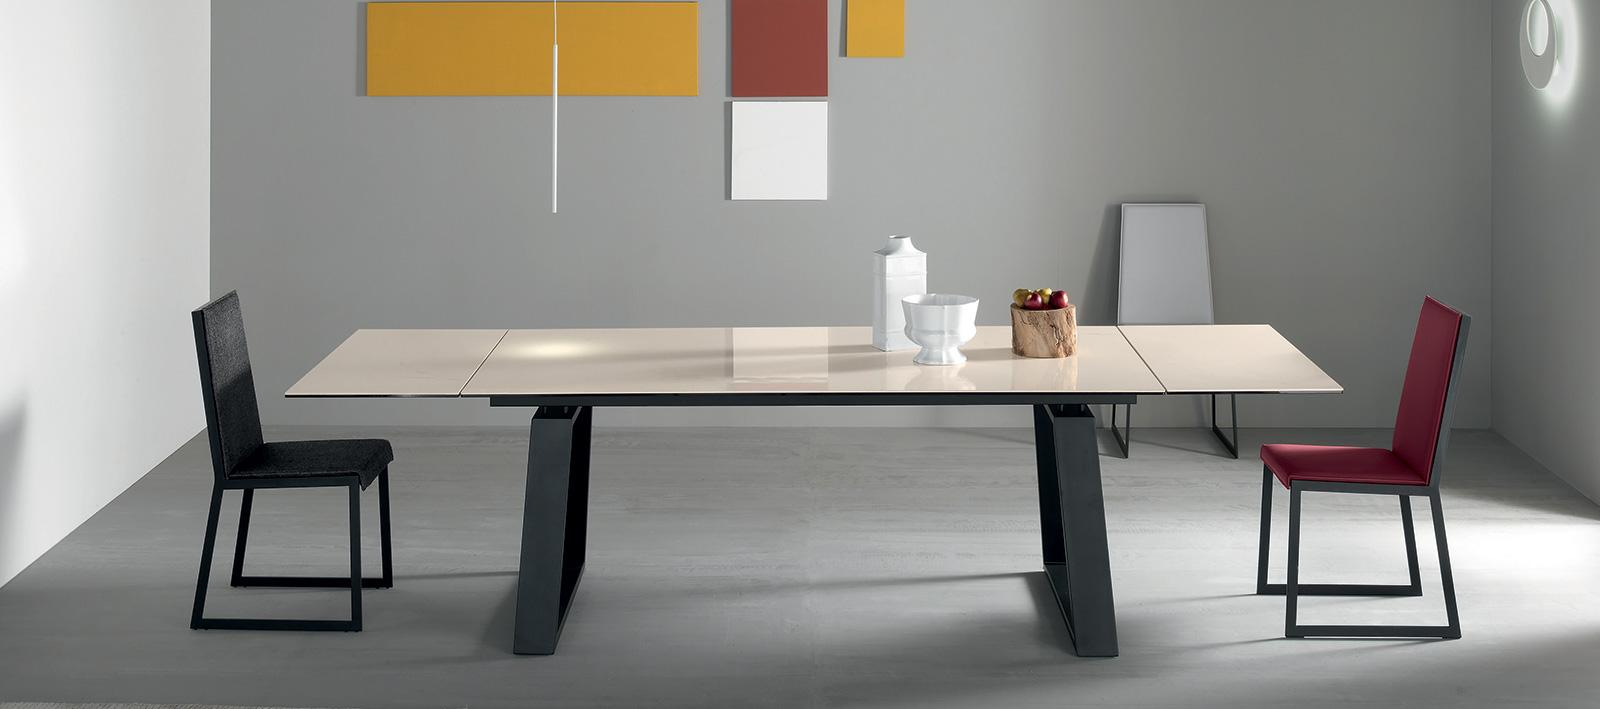 Table En C Ramique Extensible Vente En Ligne Italy Dream Design